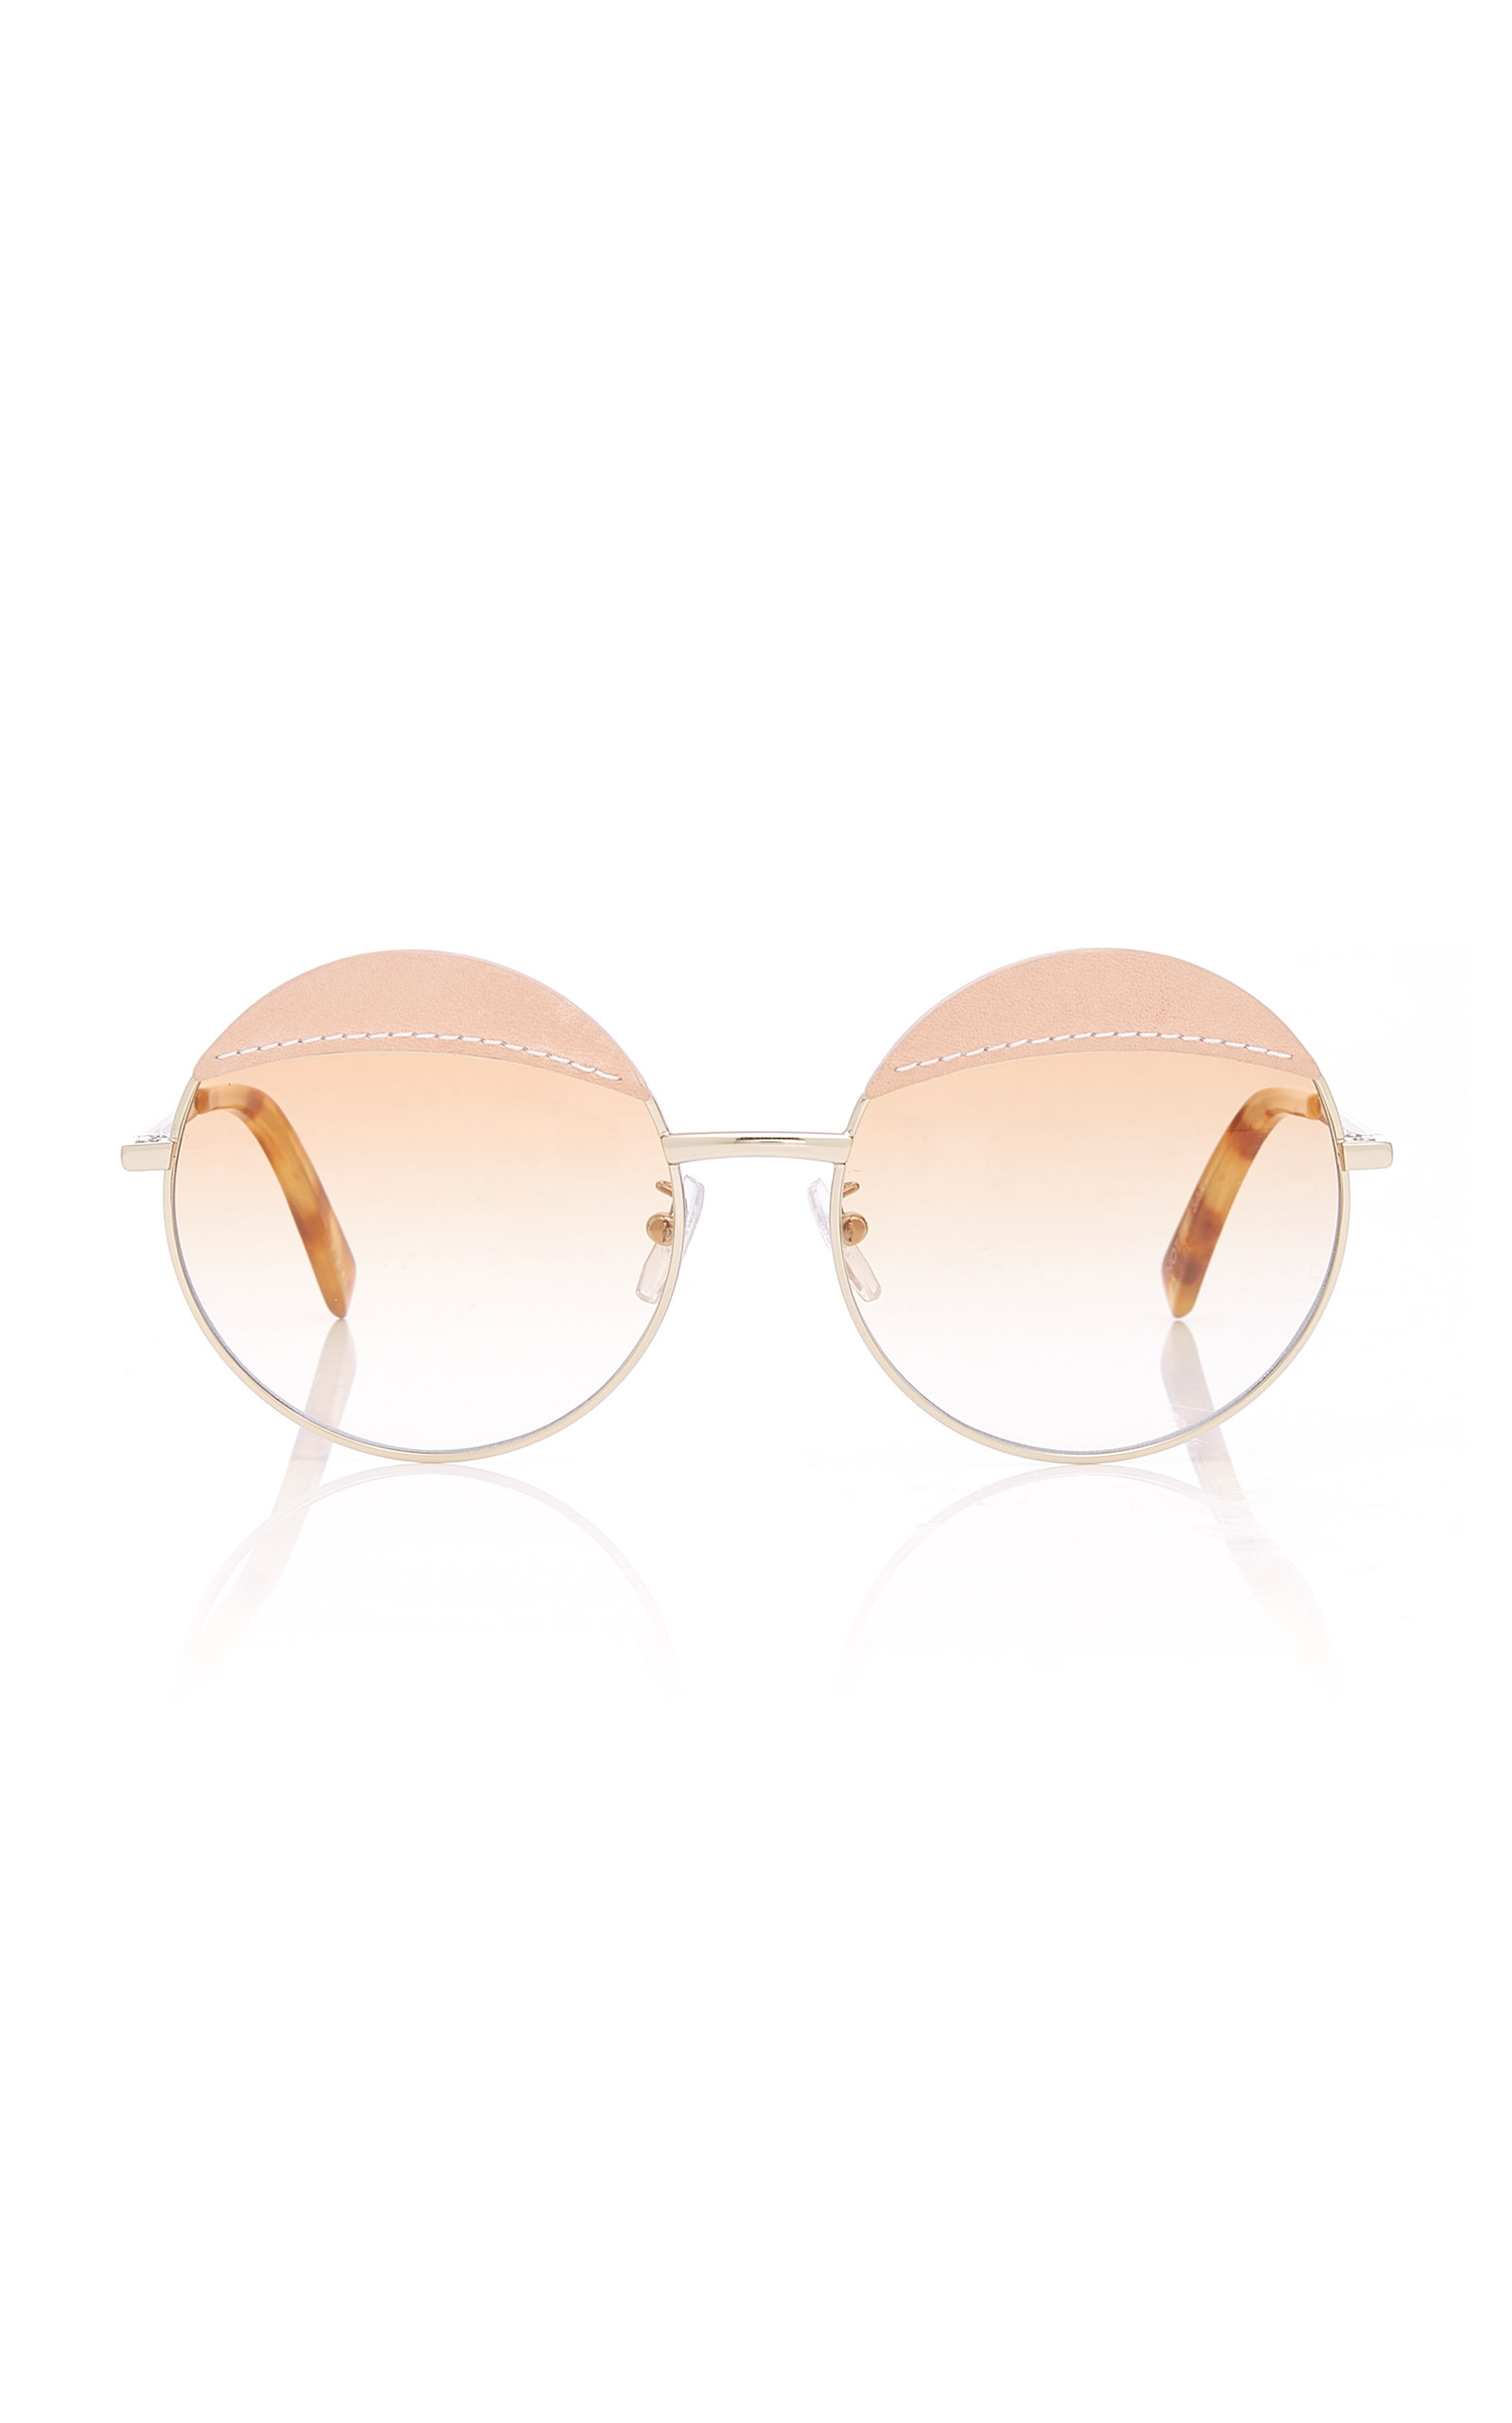 1f54ab59fa0fb Round Leather-Trimmed Metal Sunglasses by Loewe Sunglasses